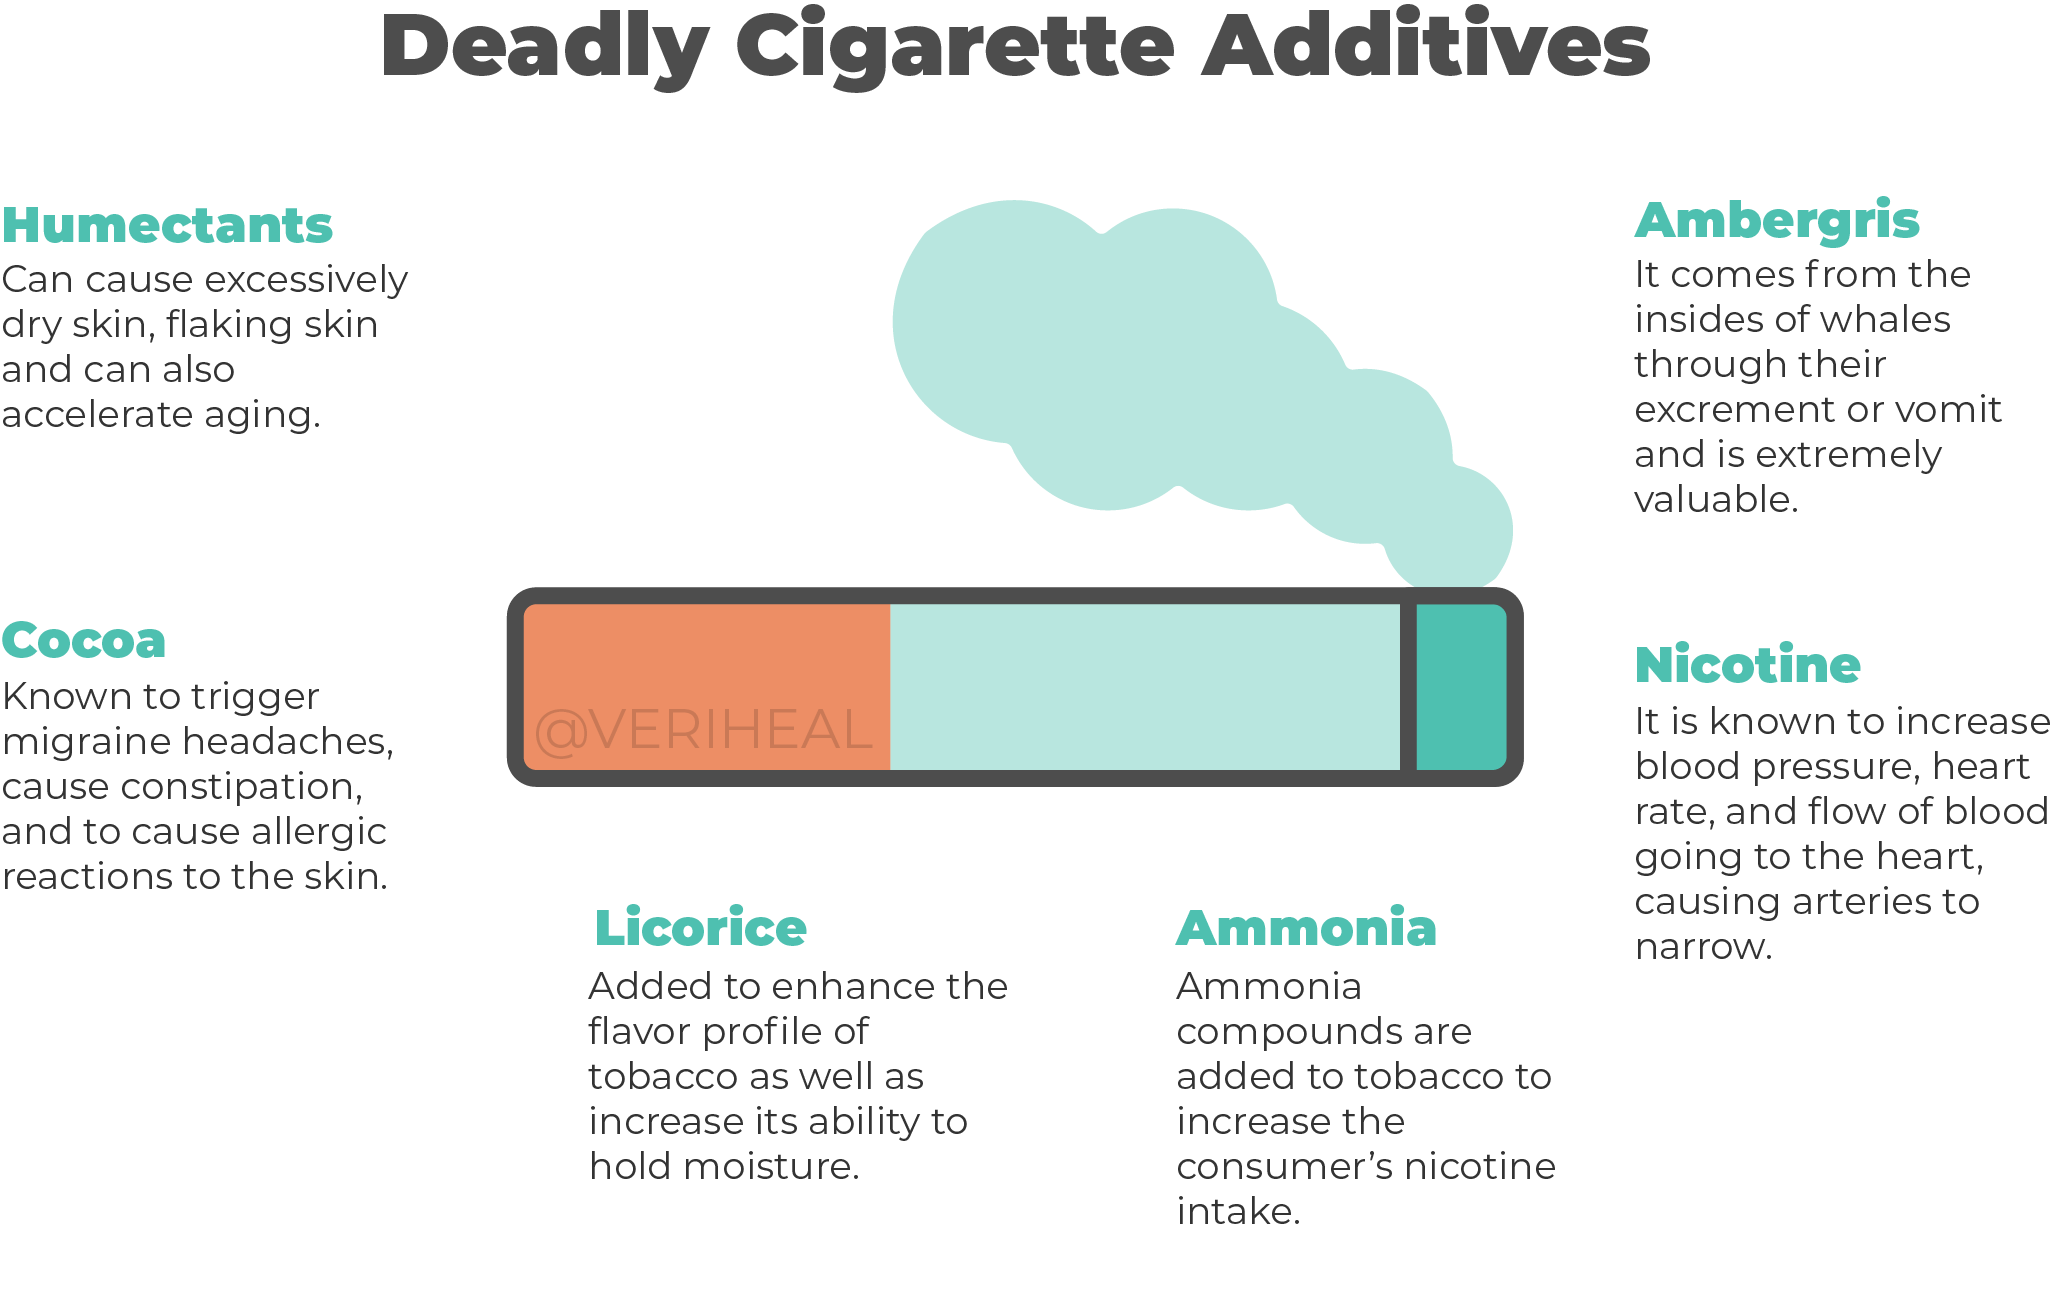 Deadly Cigarette Additives